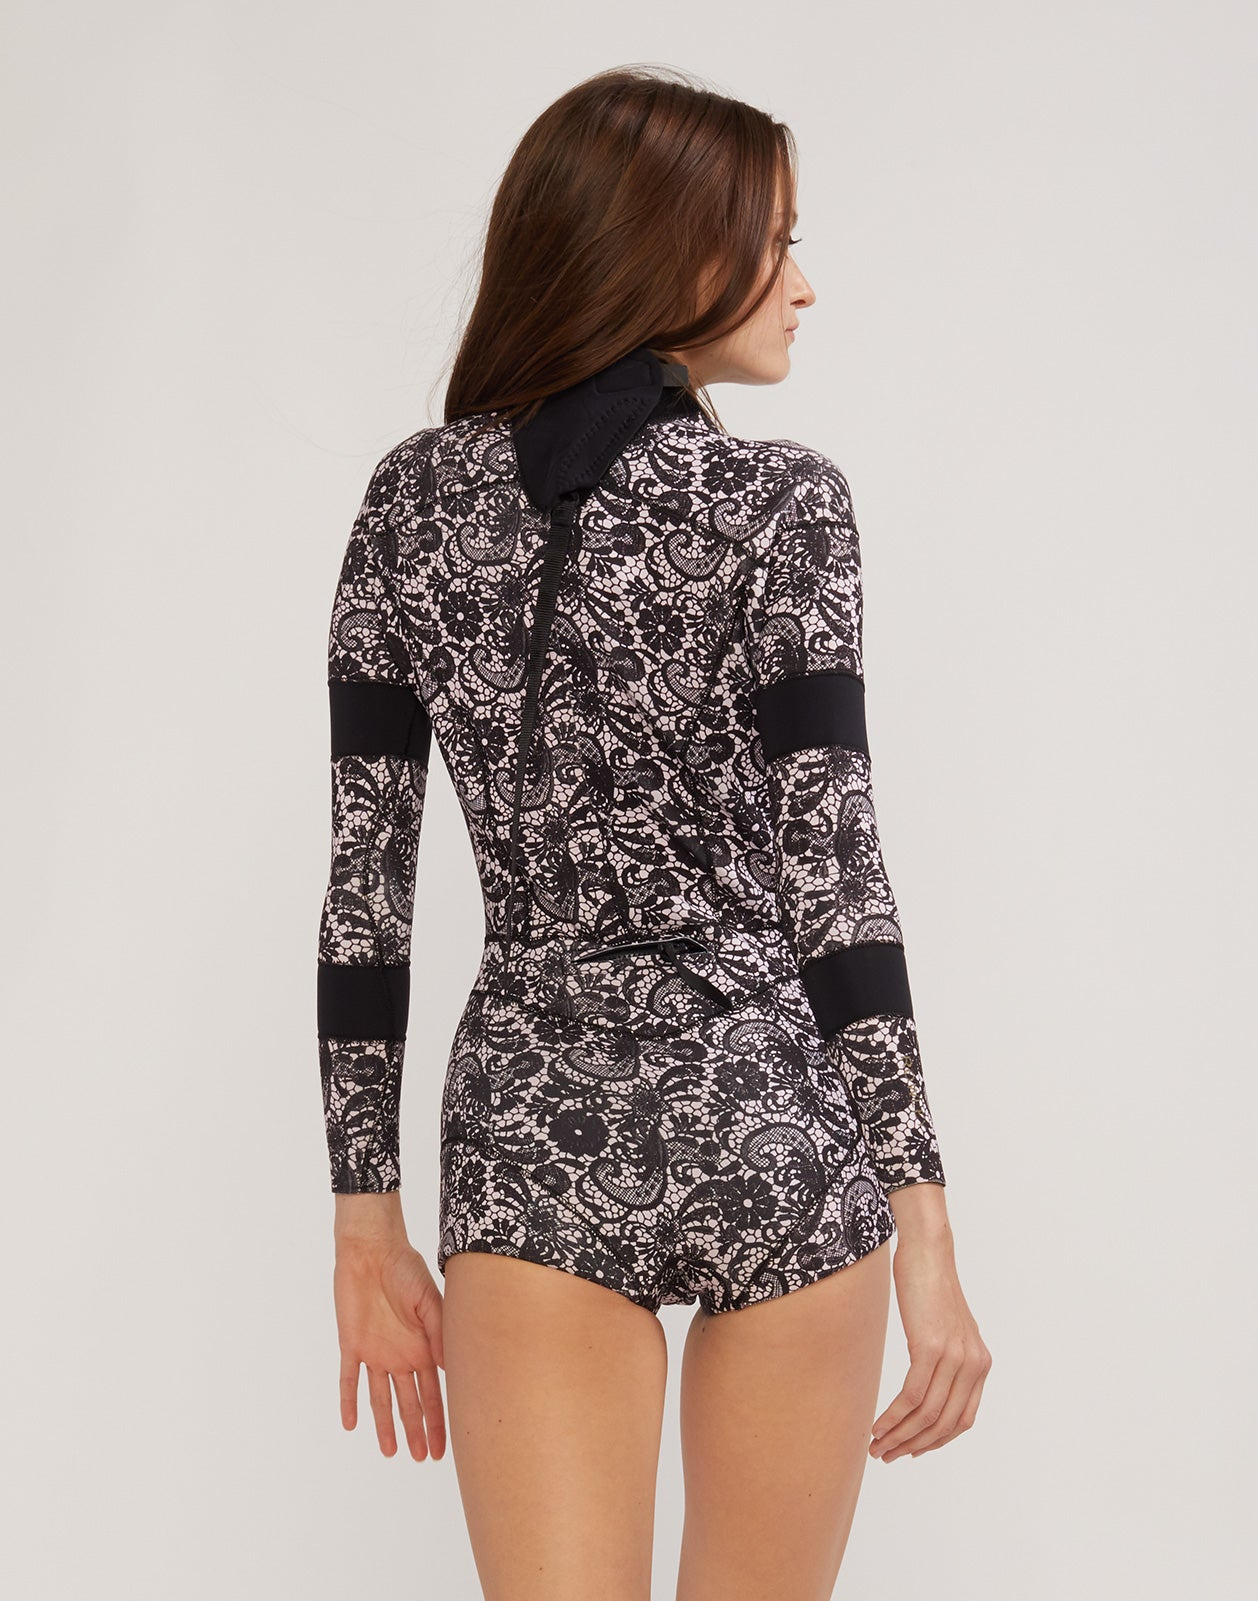 Back view of the 2mm Fiber-Lite Neoprene wetsuit in black lace print with bonded seams.